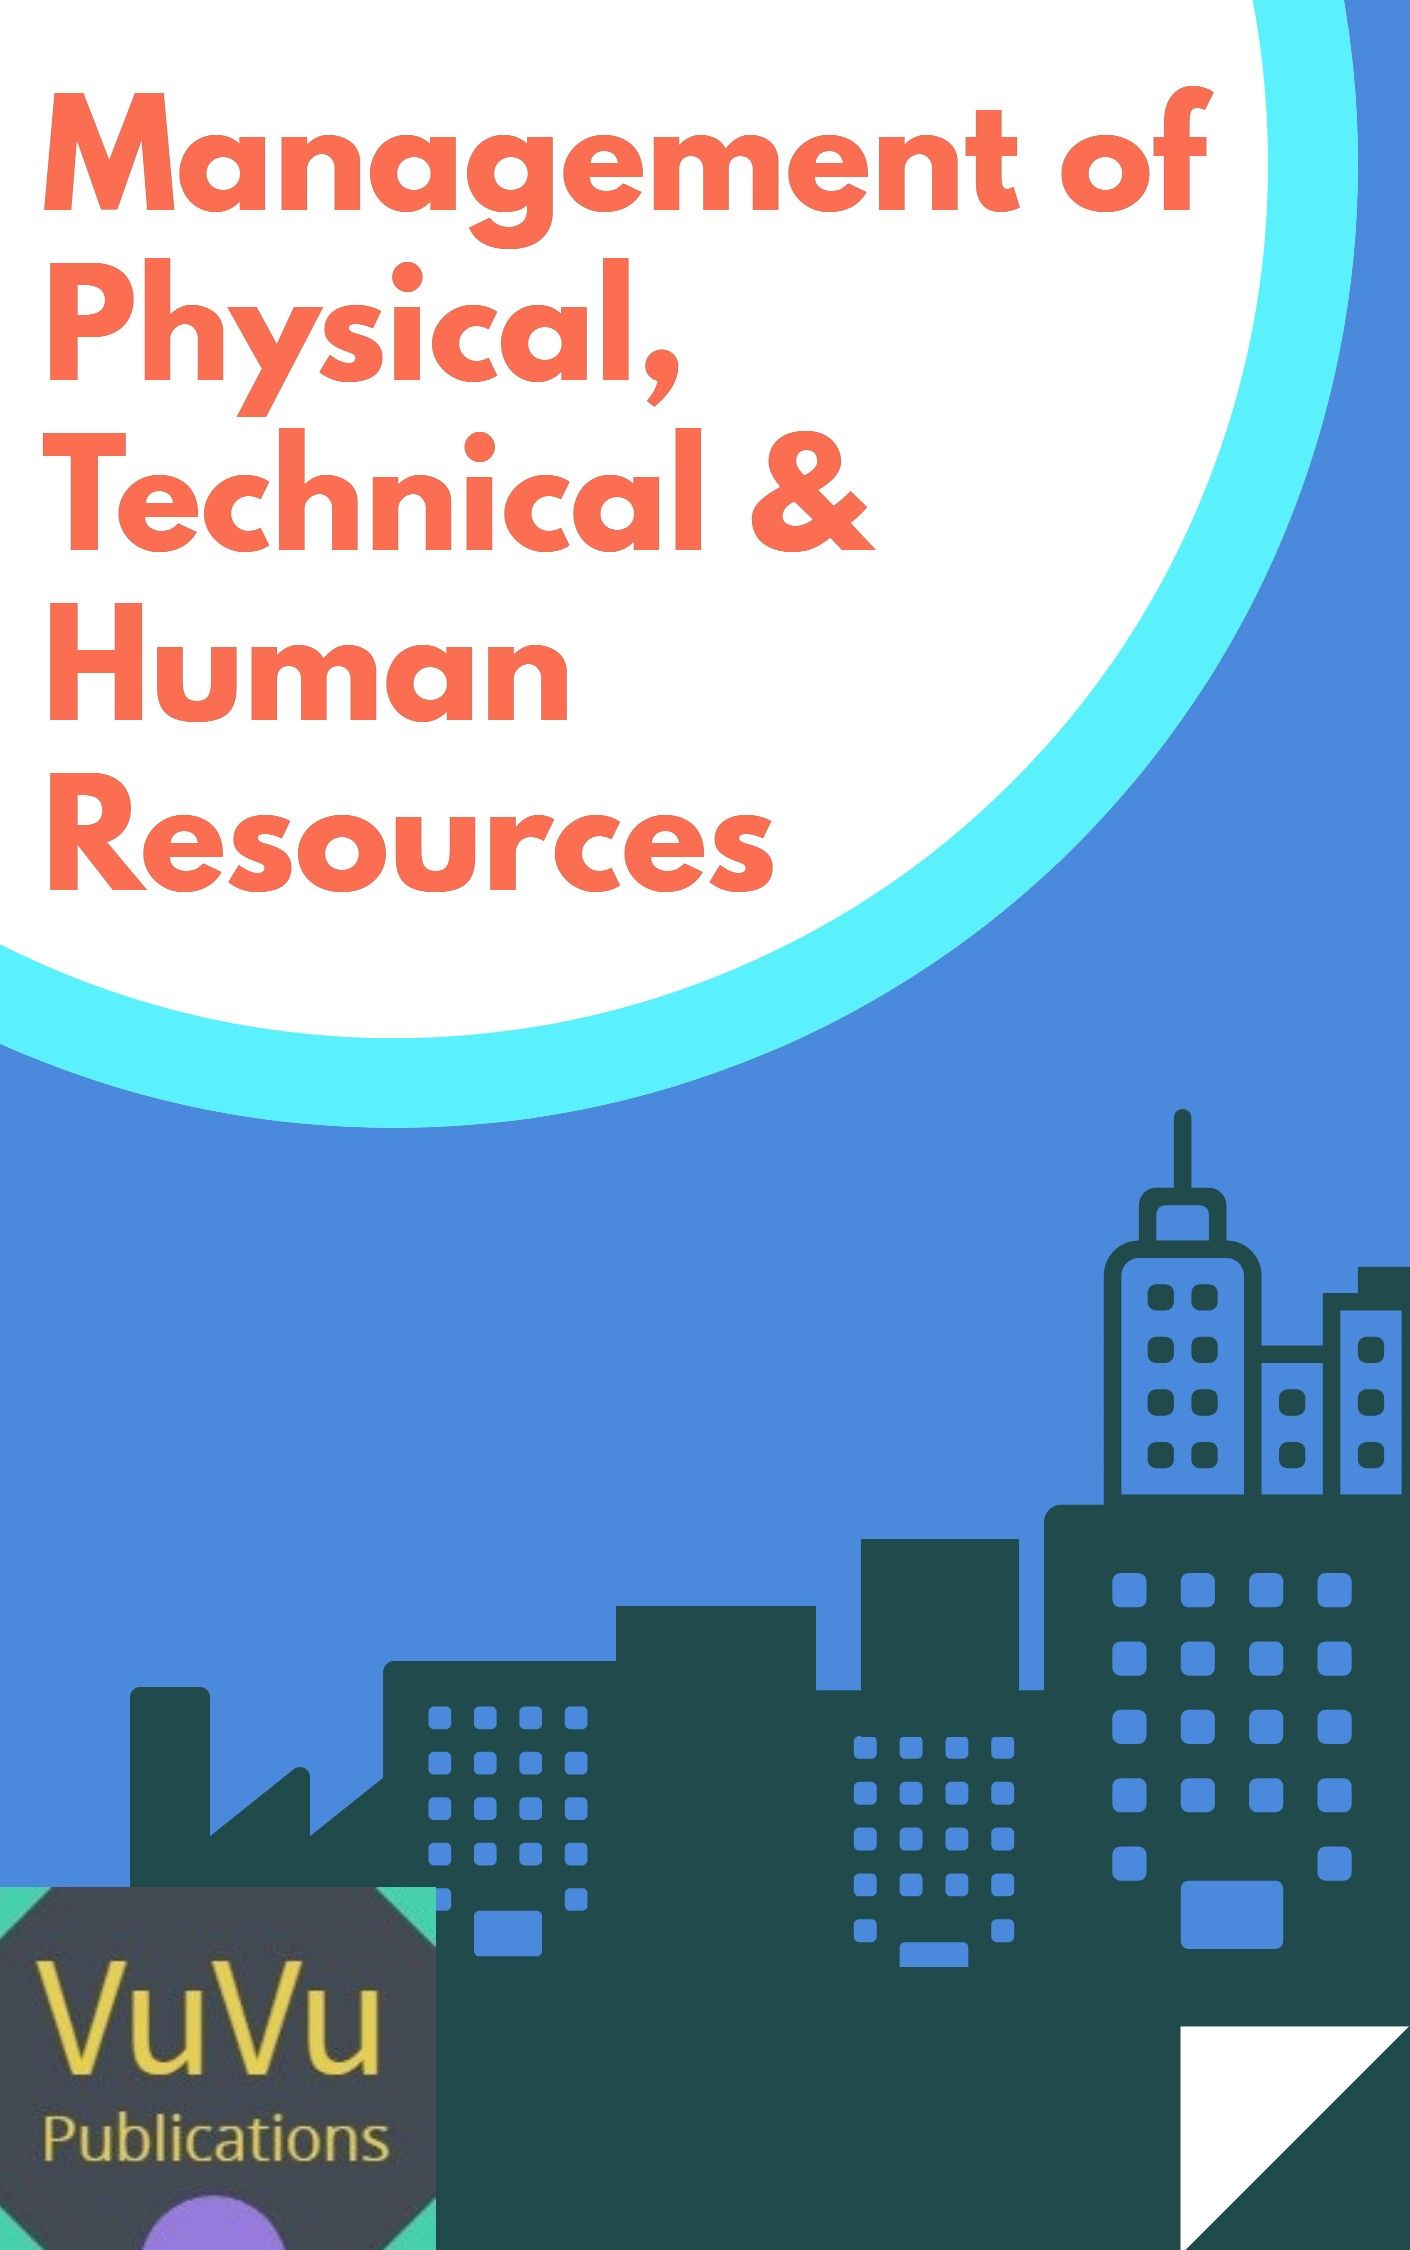 Management of PTH Resources